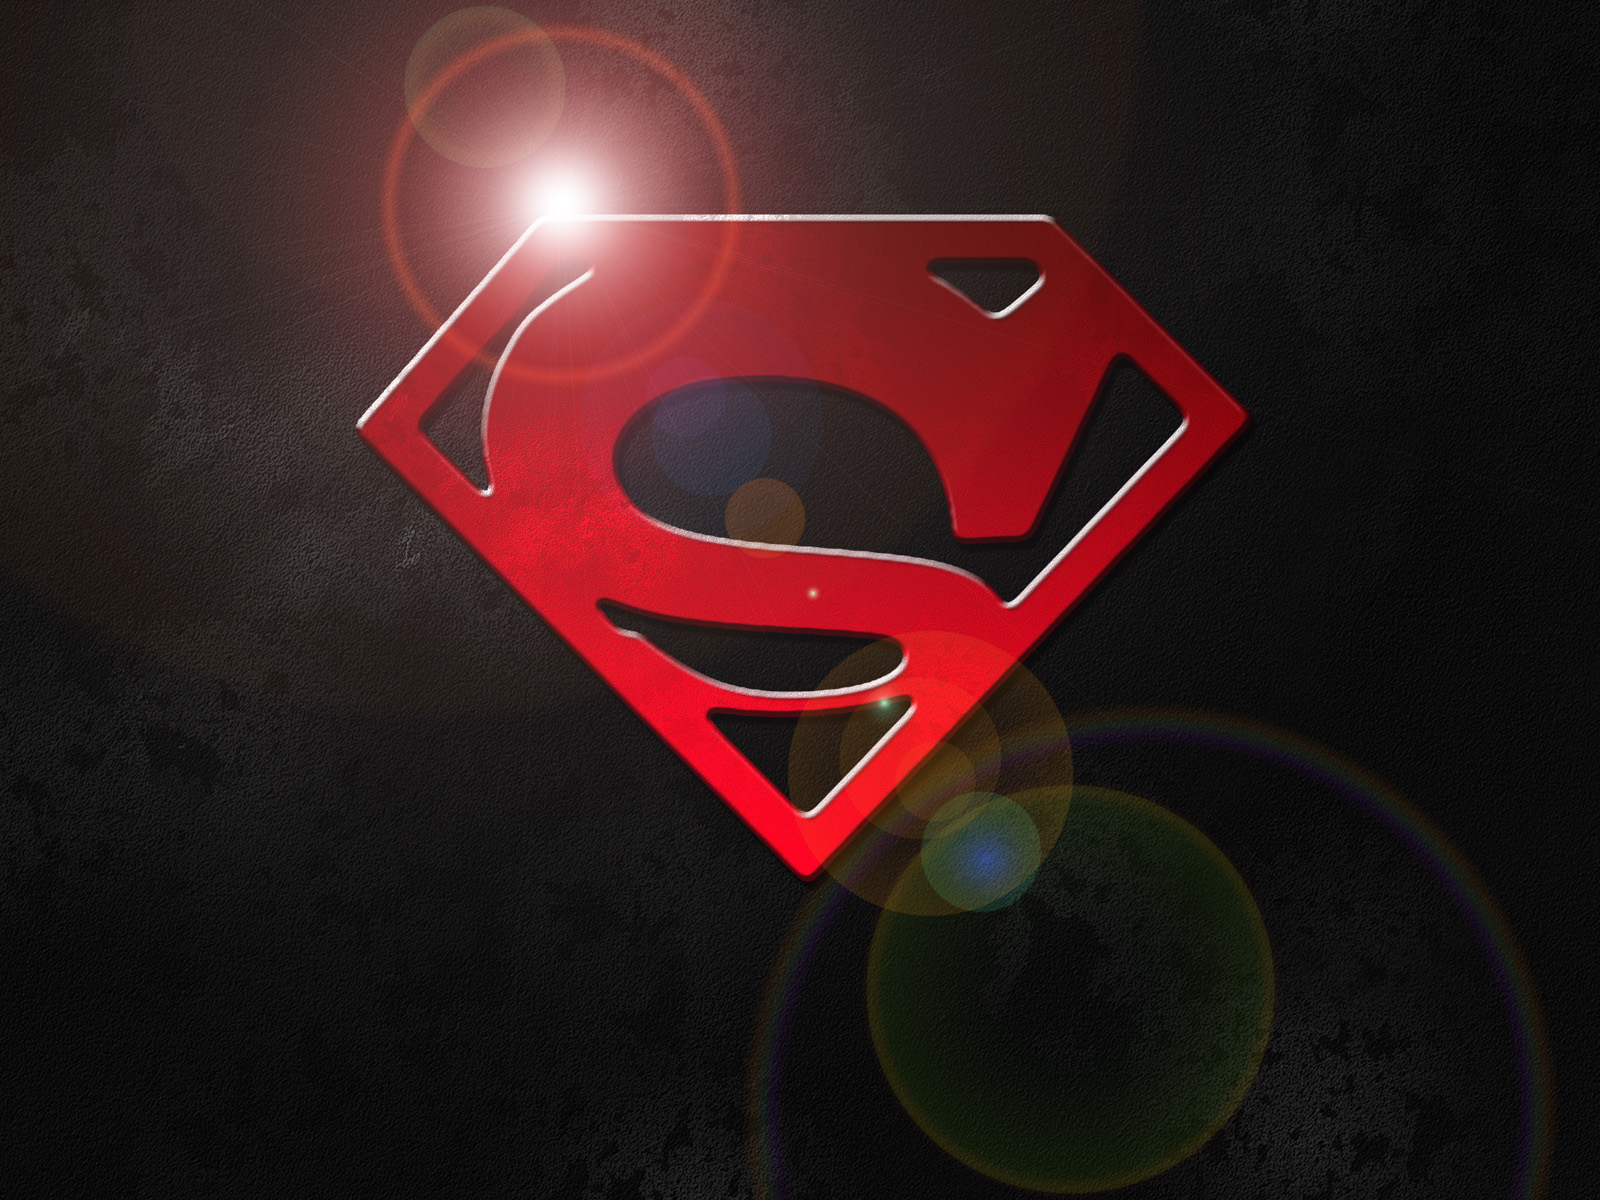 Wallpaper 107 Superman Red and Black Wallpapers 1600x1200